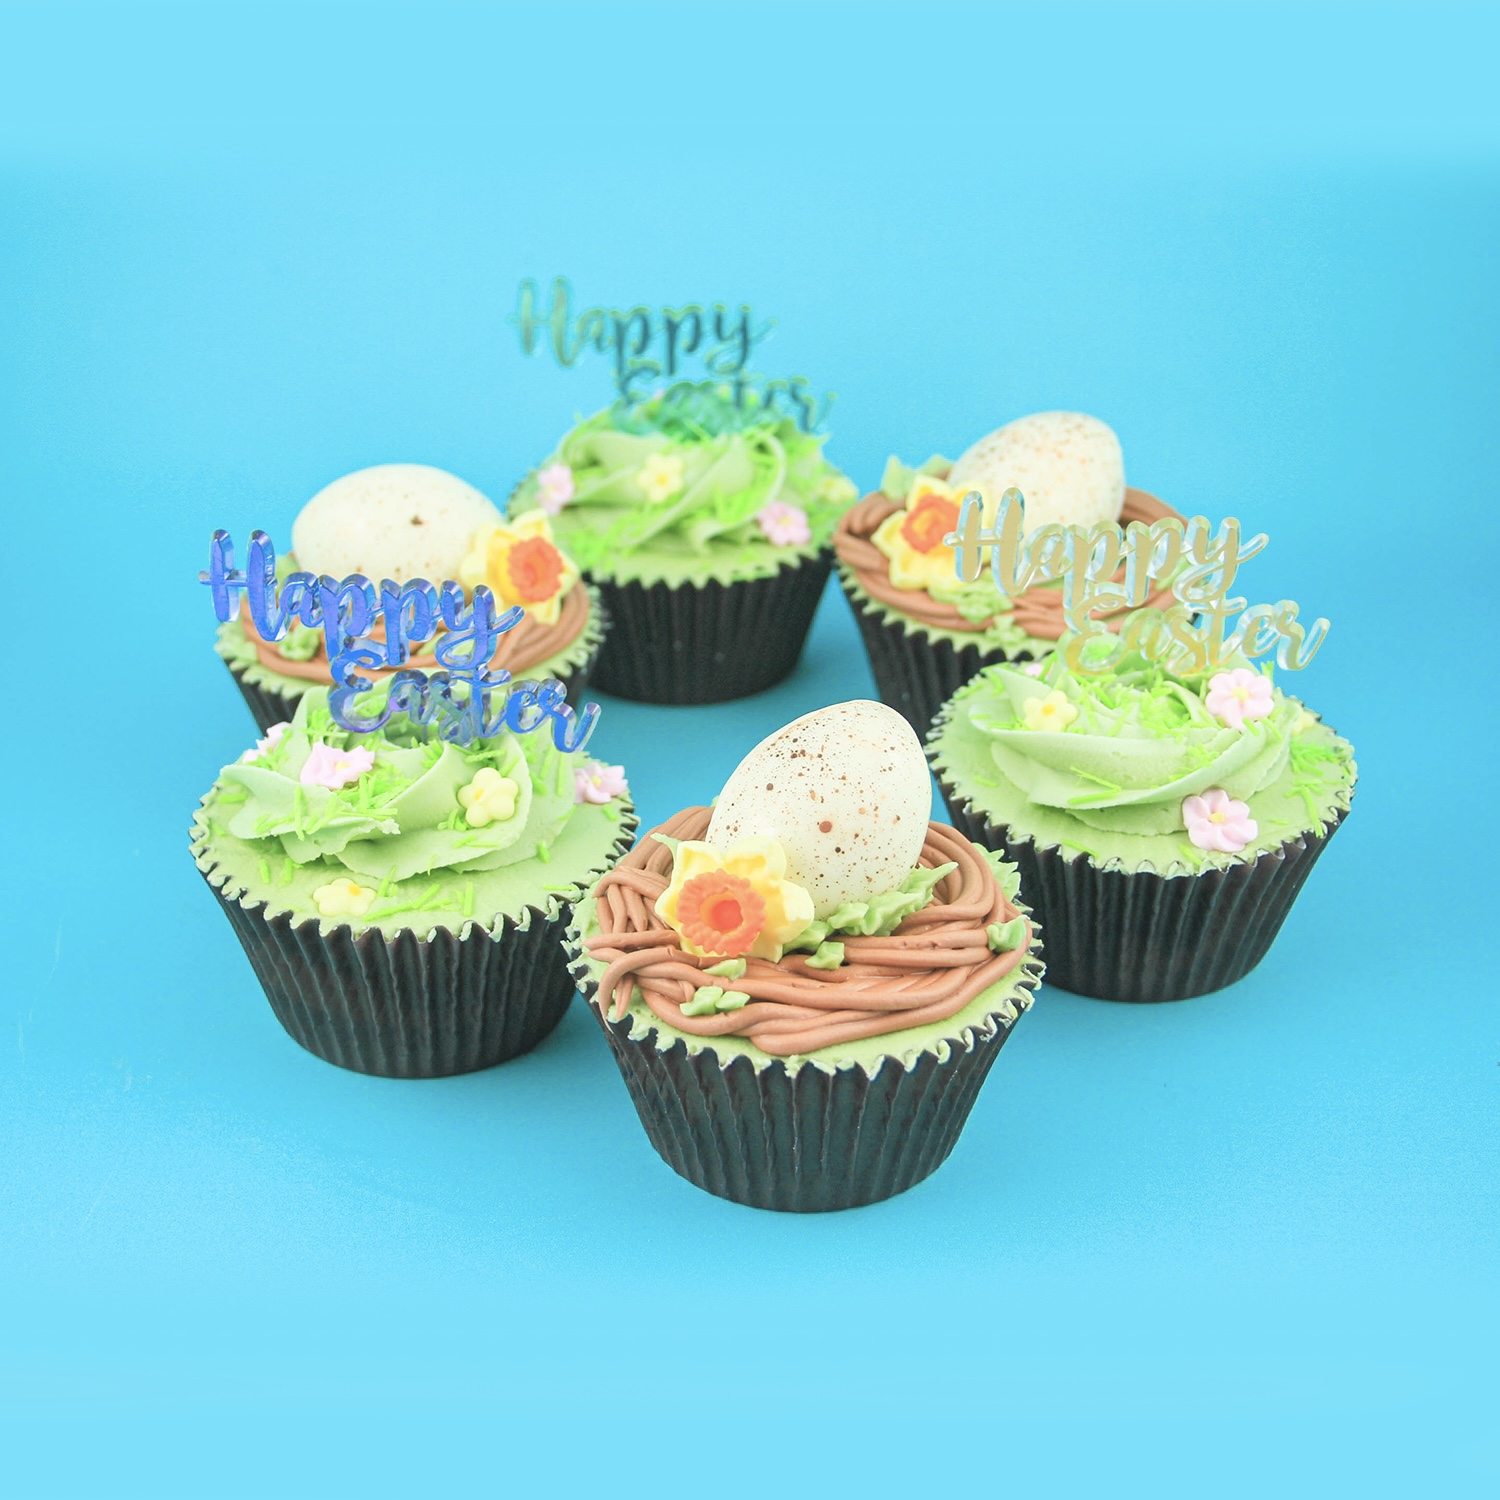 Happy Easter Cupcake Set